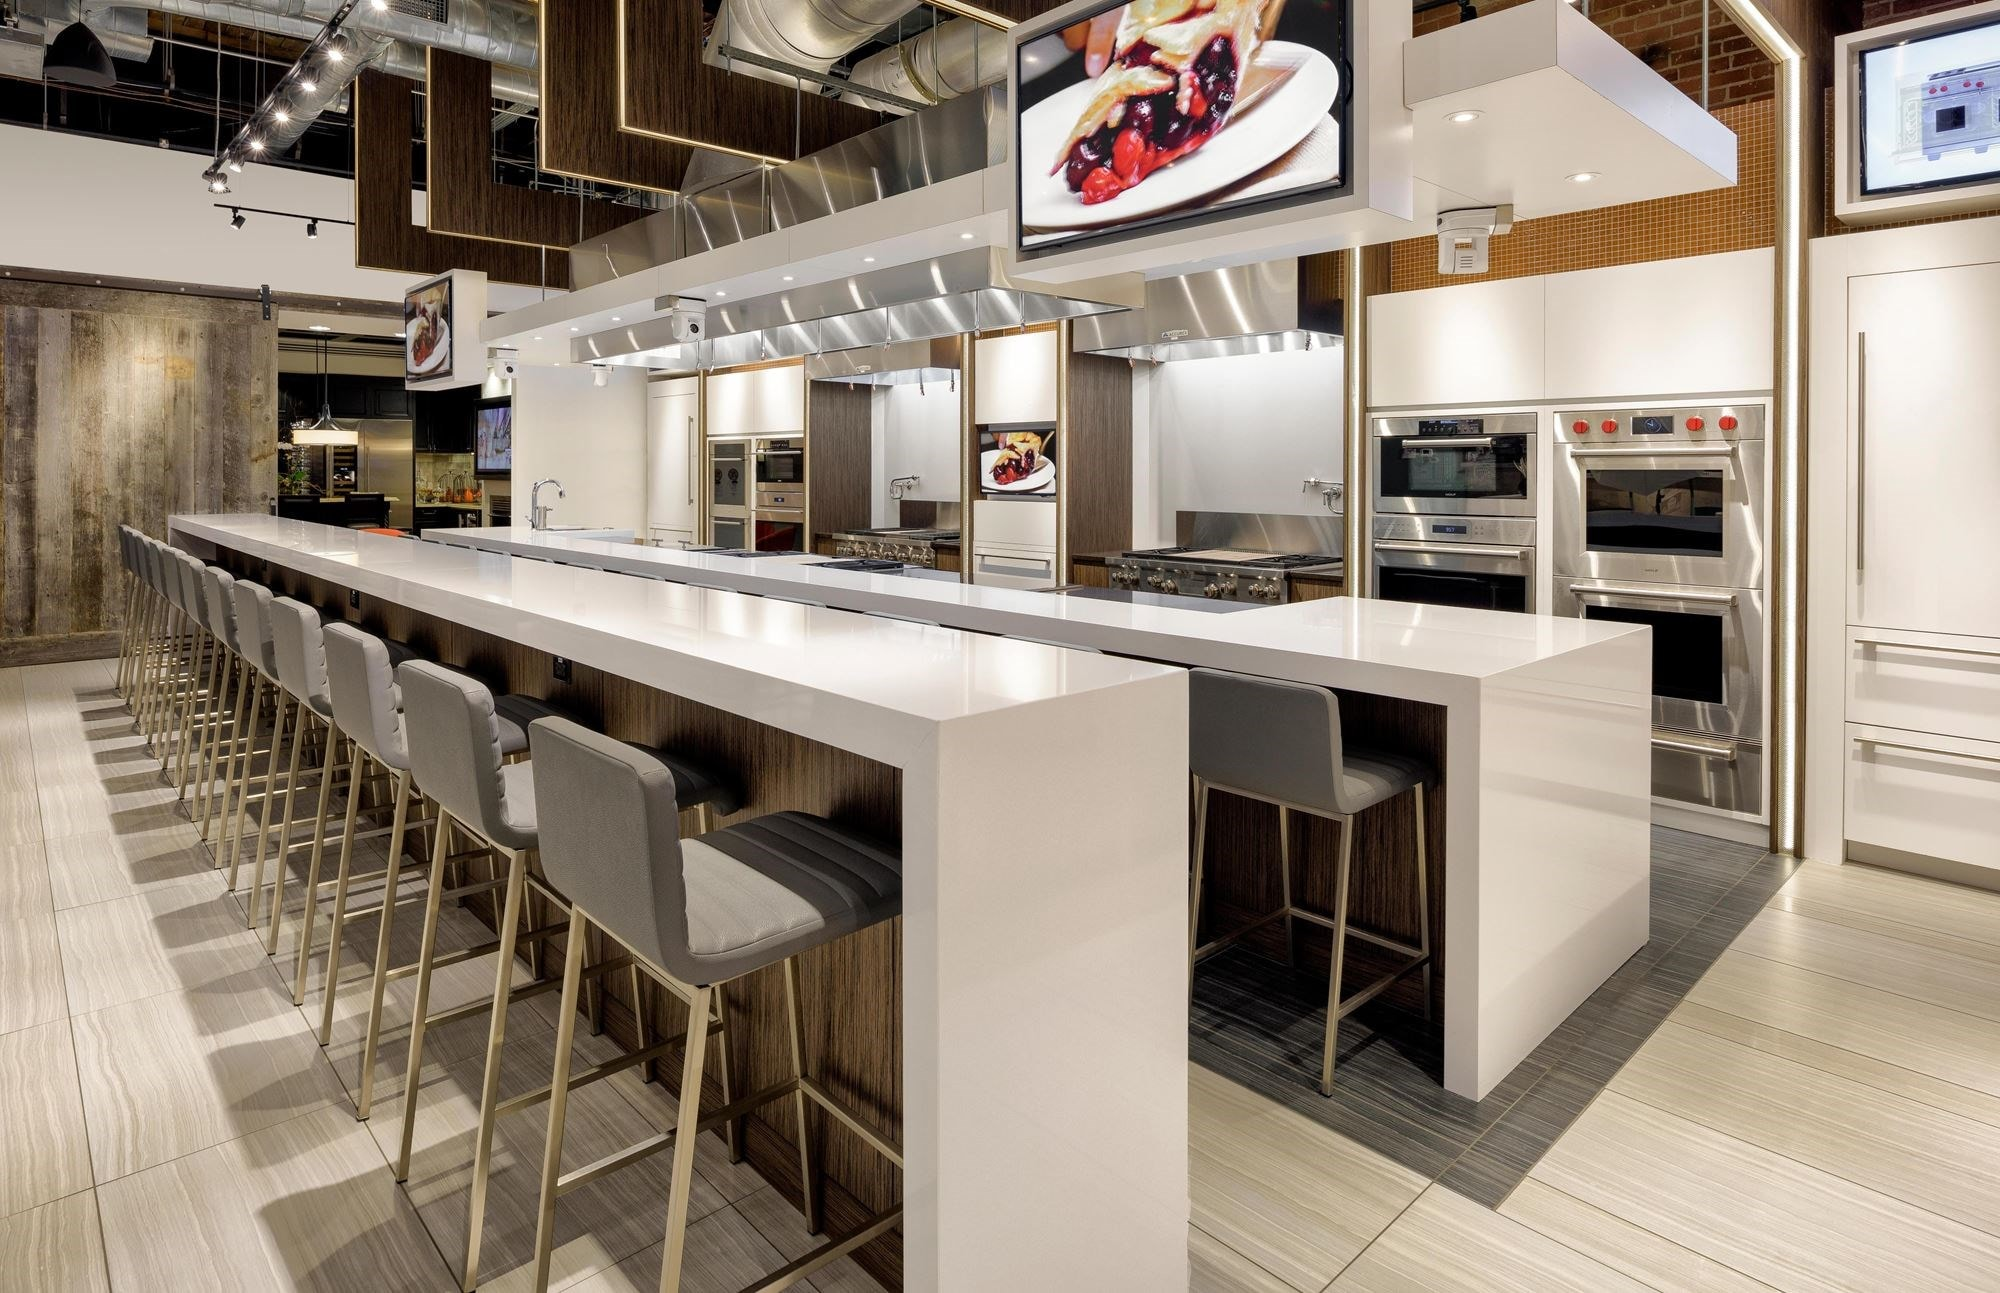 Explore ideas for your new kitchen at Sub-Zero, Wolf and Cove Showroom in Charlotte, North Carolina